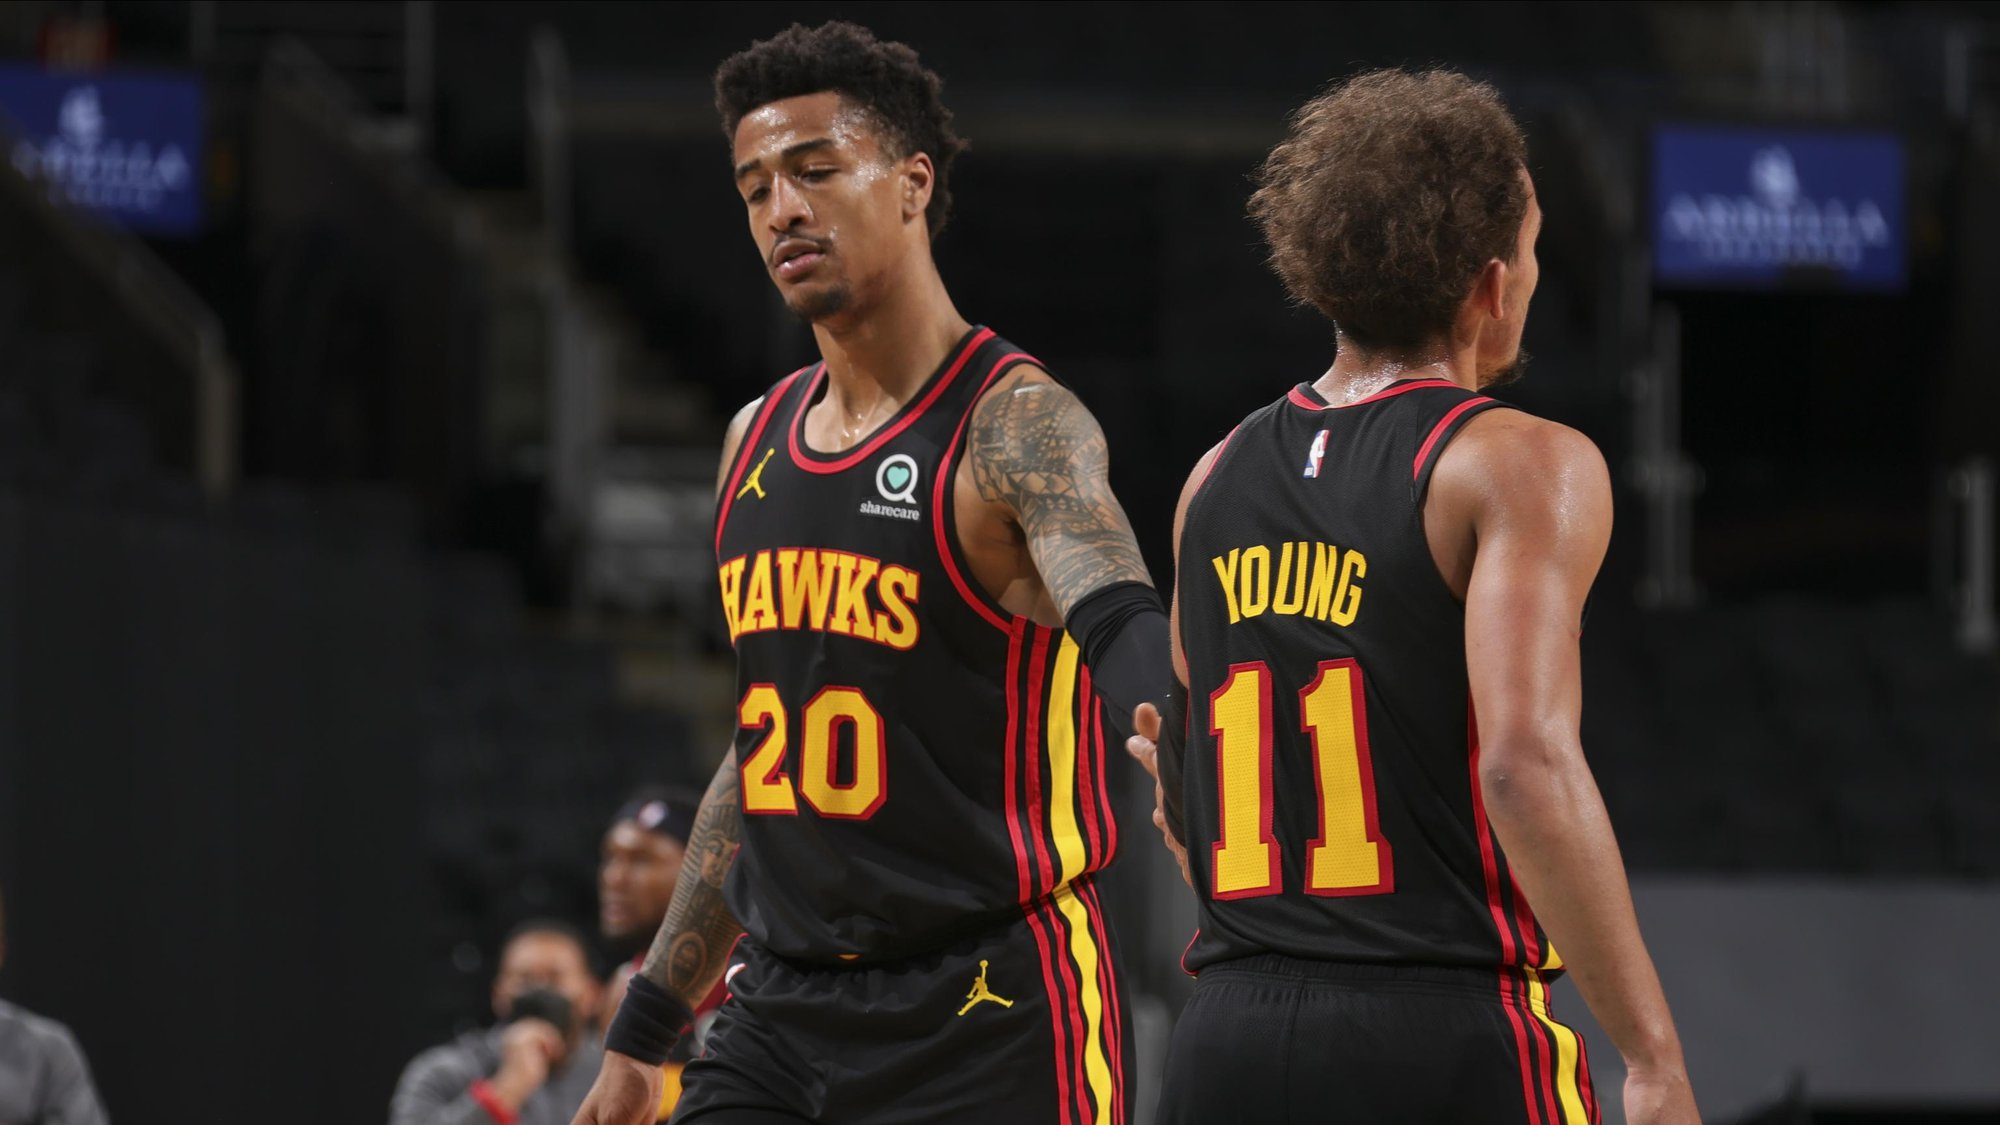 NBA Win Totals: Rising Hawks Could Win 50 While Under Is Best Bet on Bulls